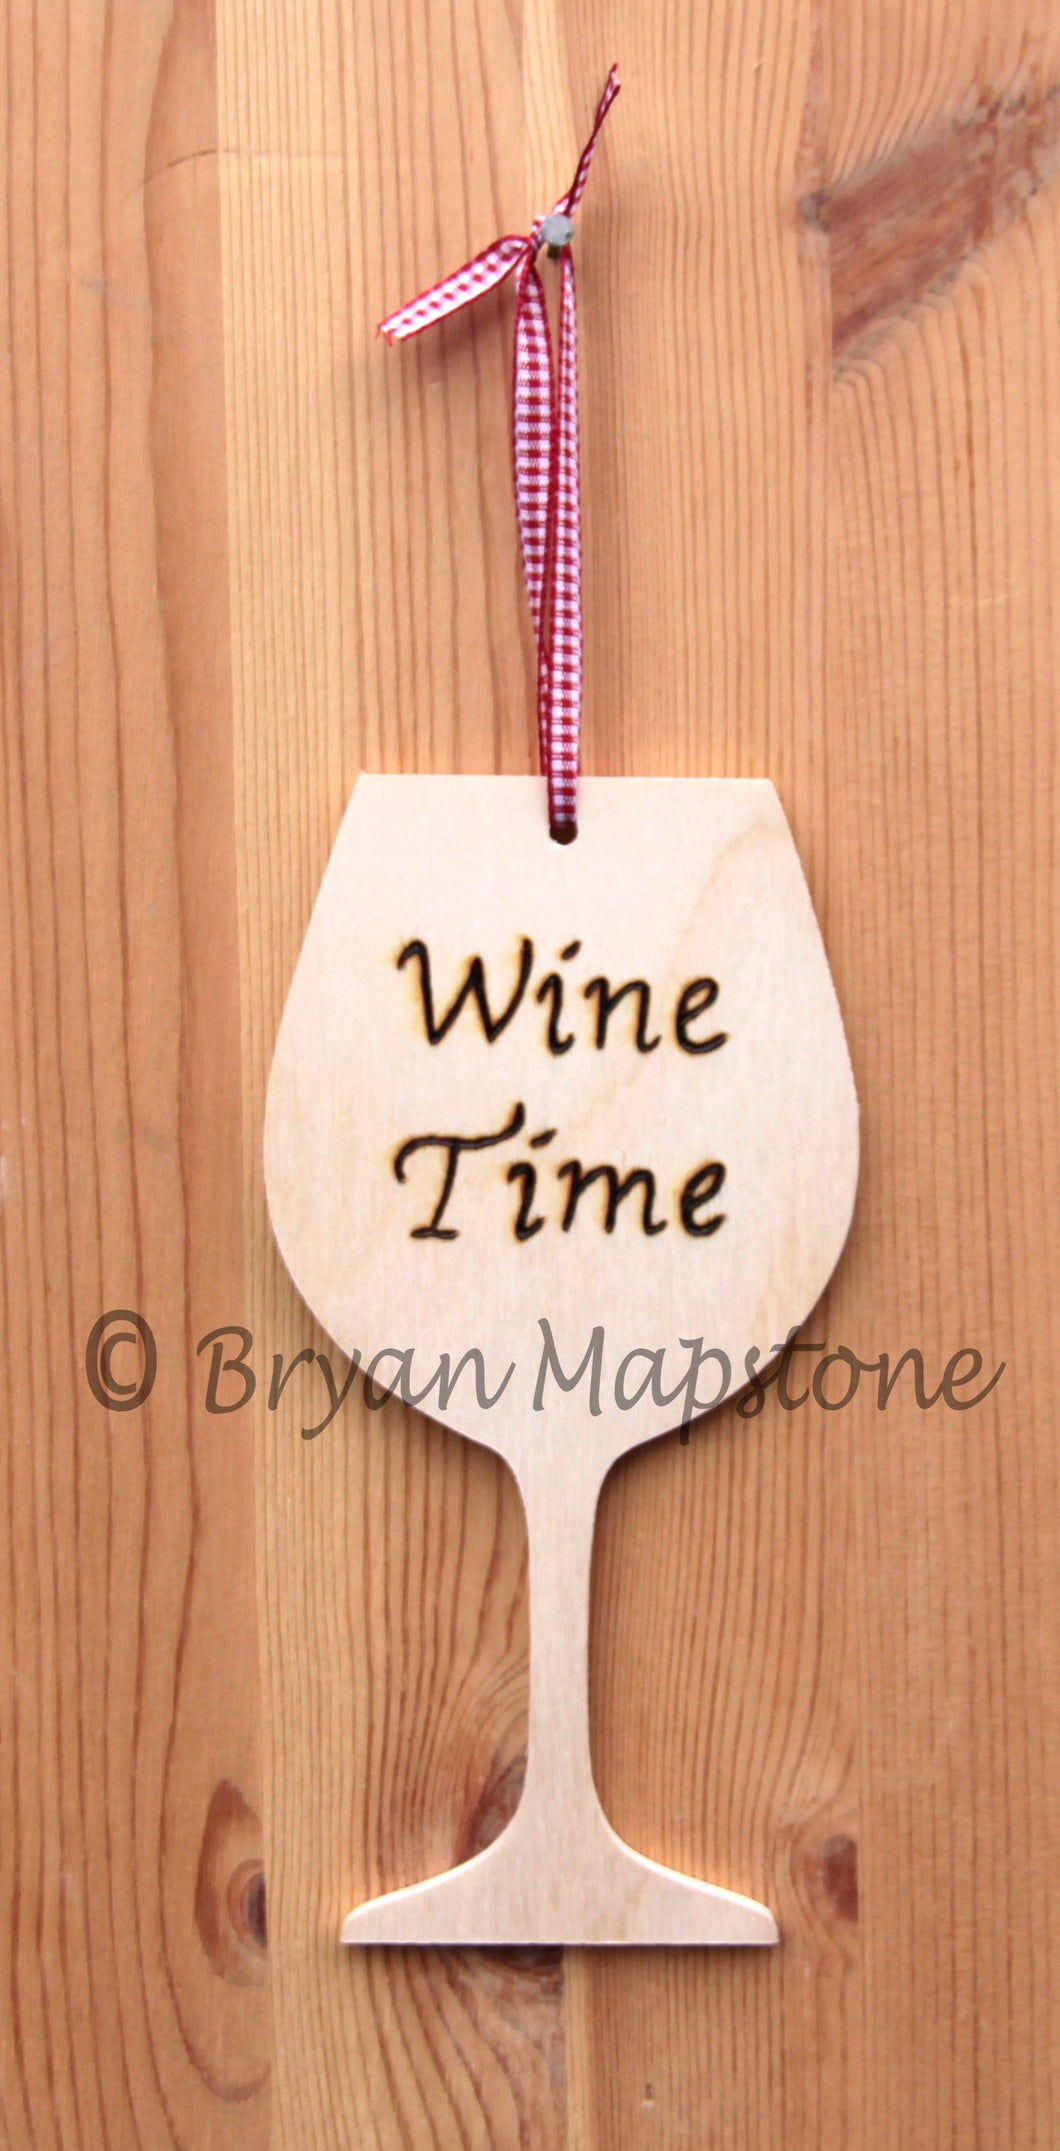 Wine time plaque